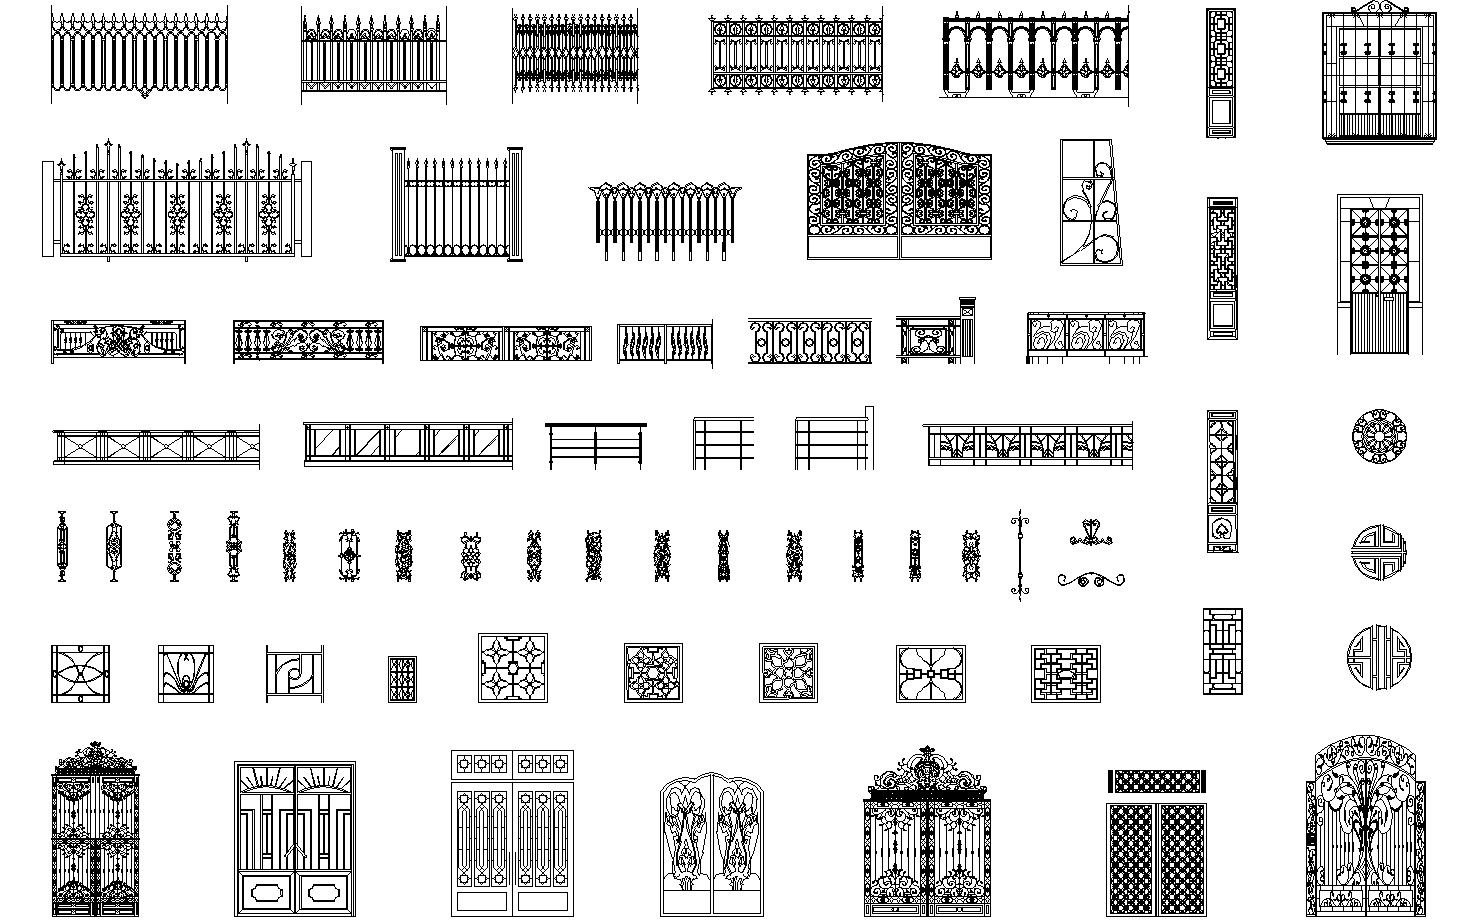 Pin On Ornamental Parts Balusters Newels Knuckles Baskets Wrought